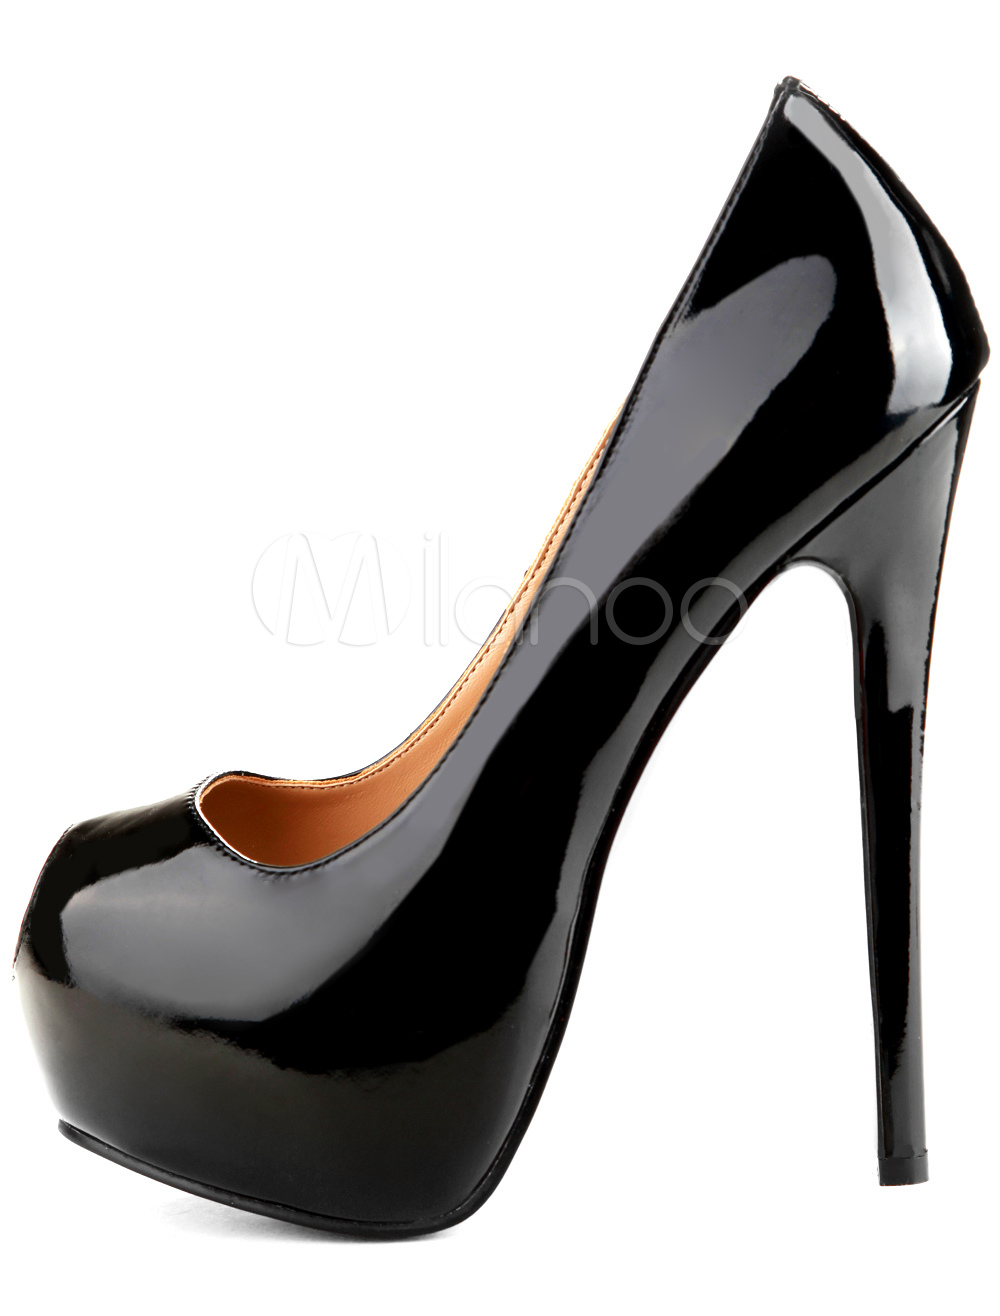 Black Peep Toe Platform High Heel Shoes